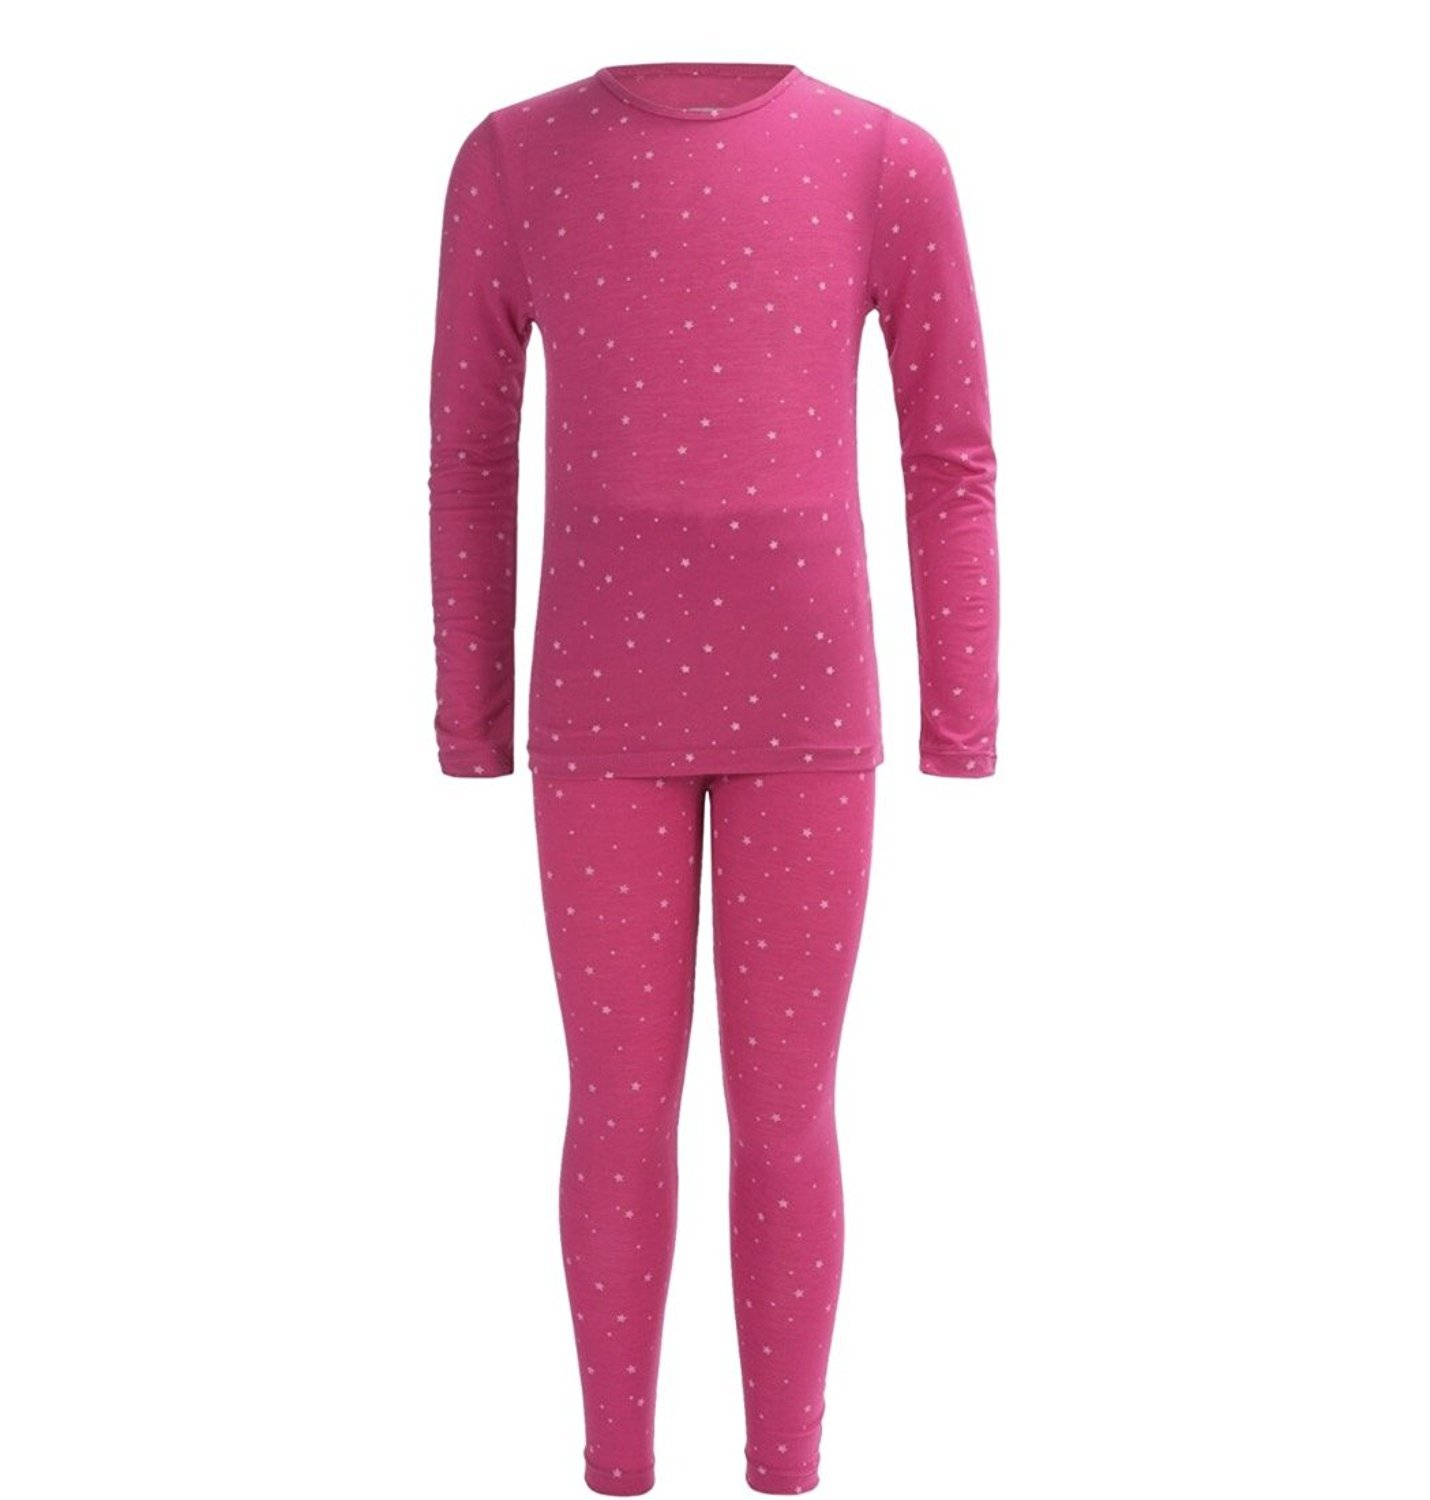 32 Degrees Weatherproof Big Girls Base Layer Thermal Set, L, Starry Pink